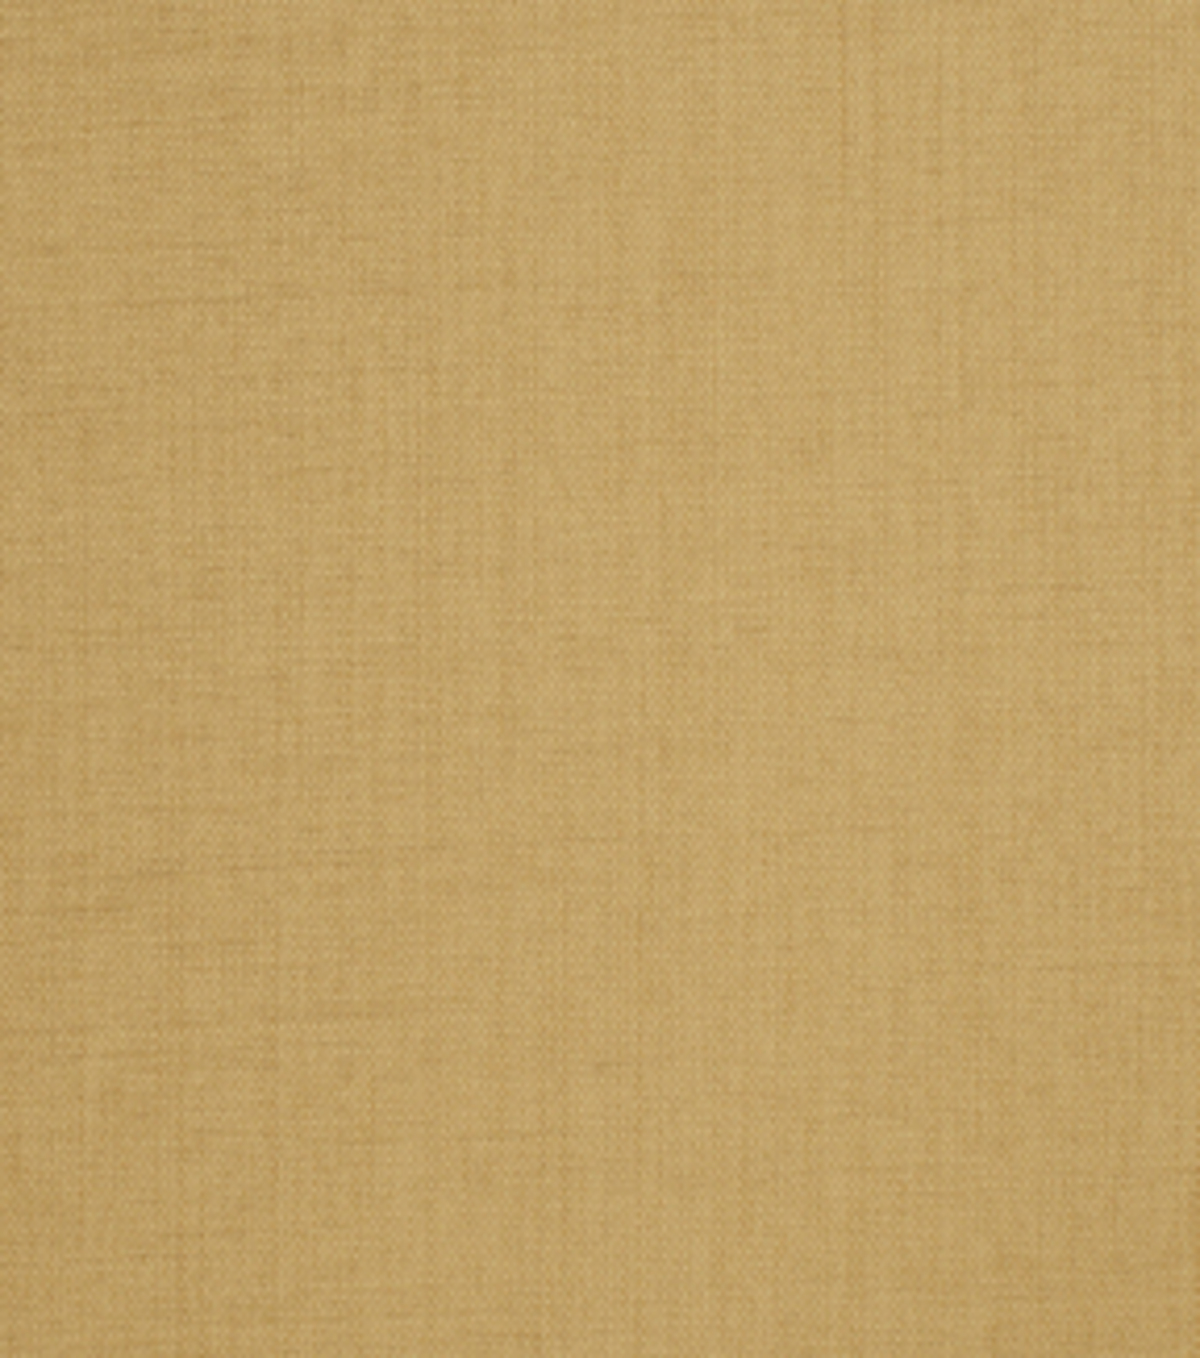 "Home Decor 8""x8"" Fabric Swatch-Eaton Square Ring Toss Gold"